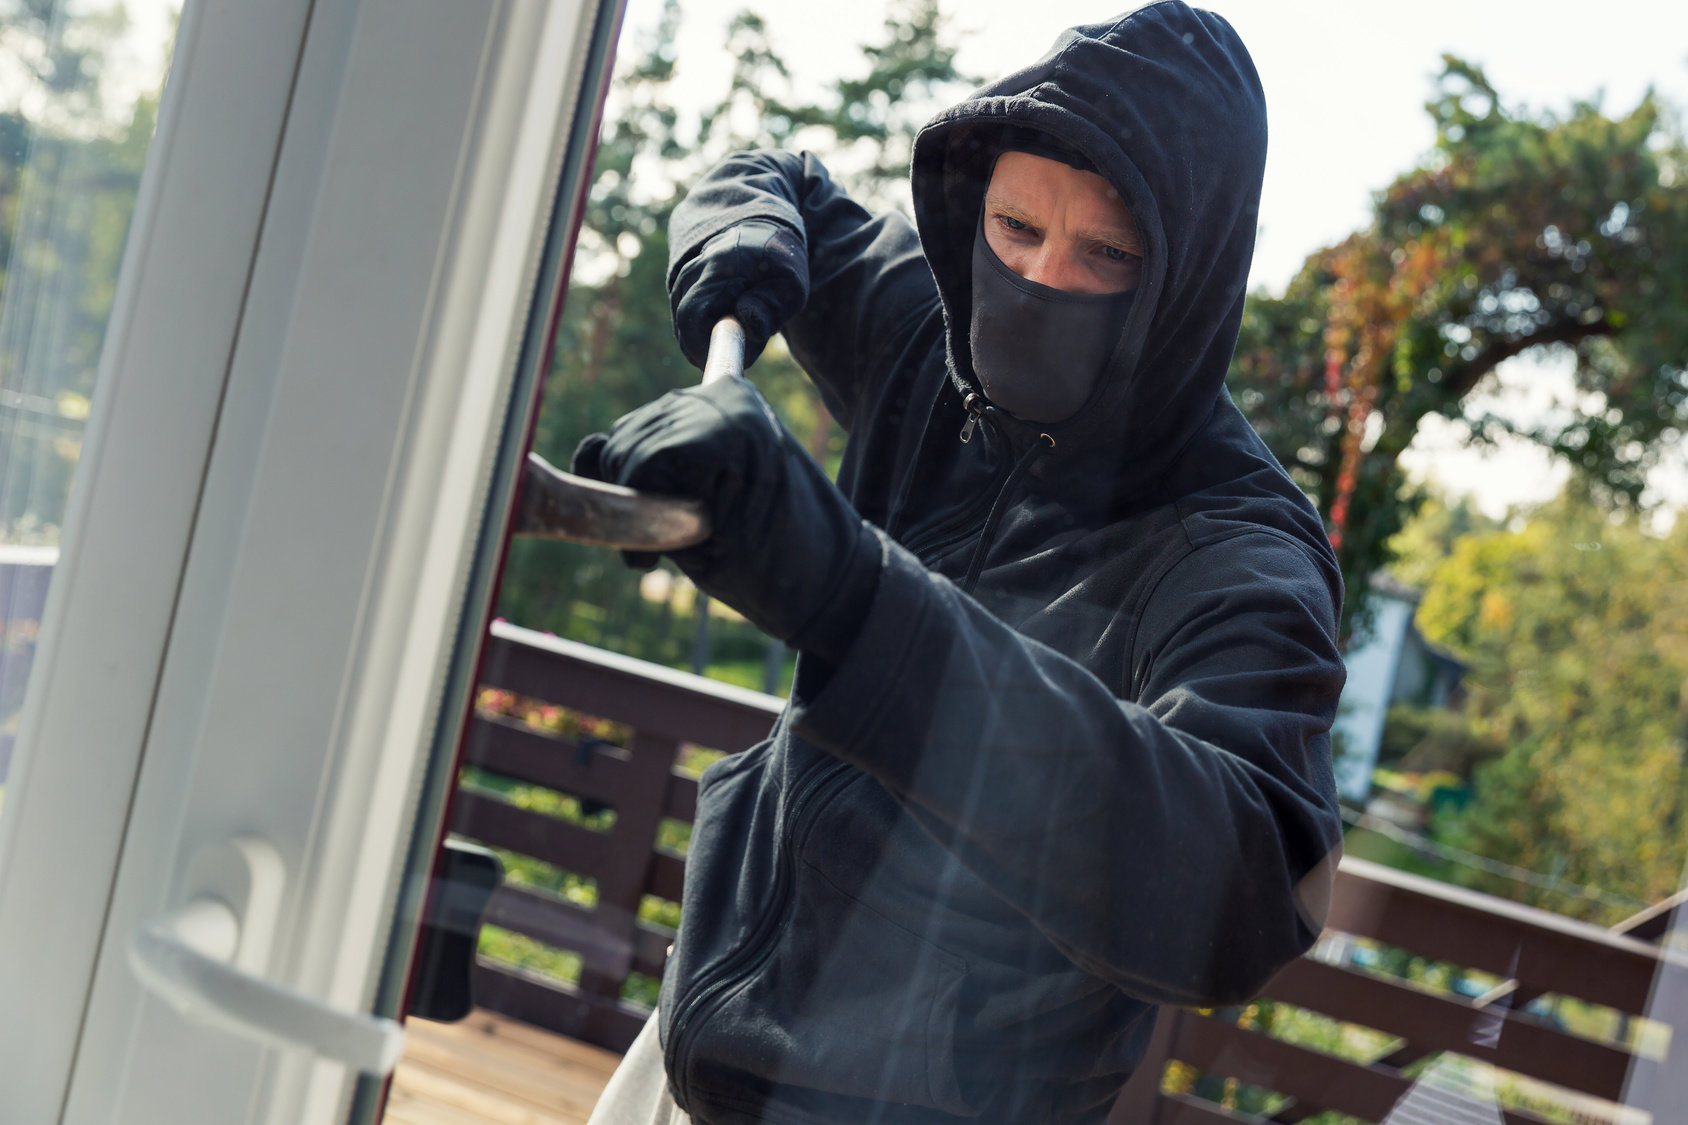 Windows which protect against burglary